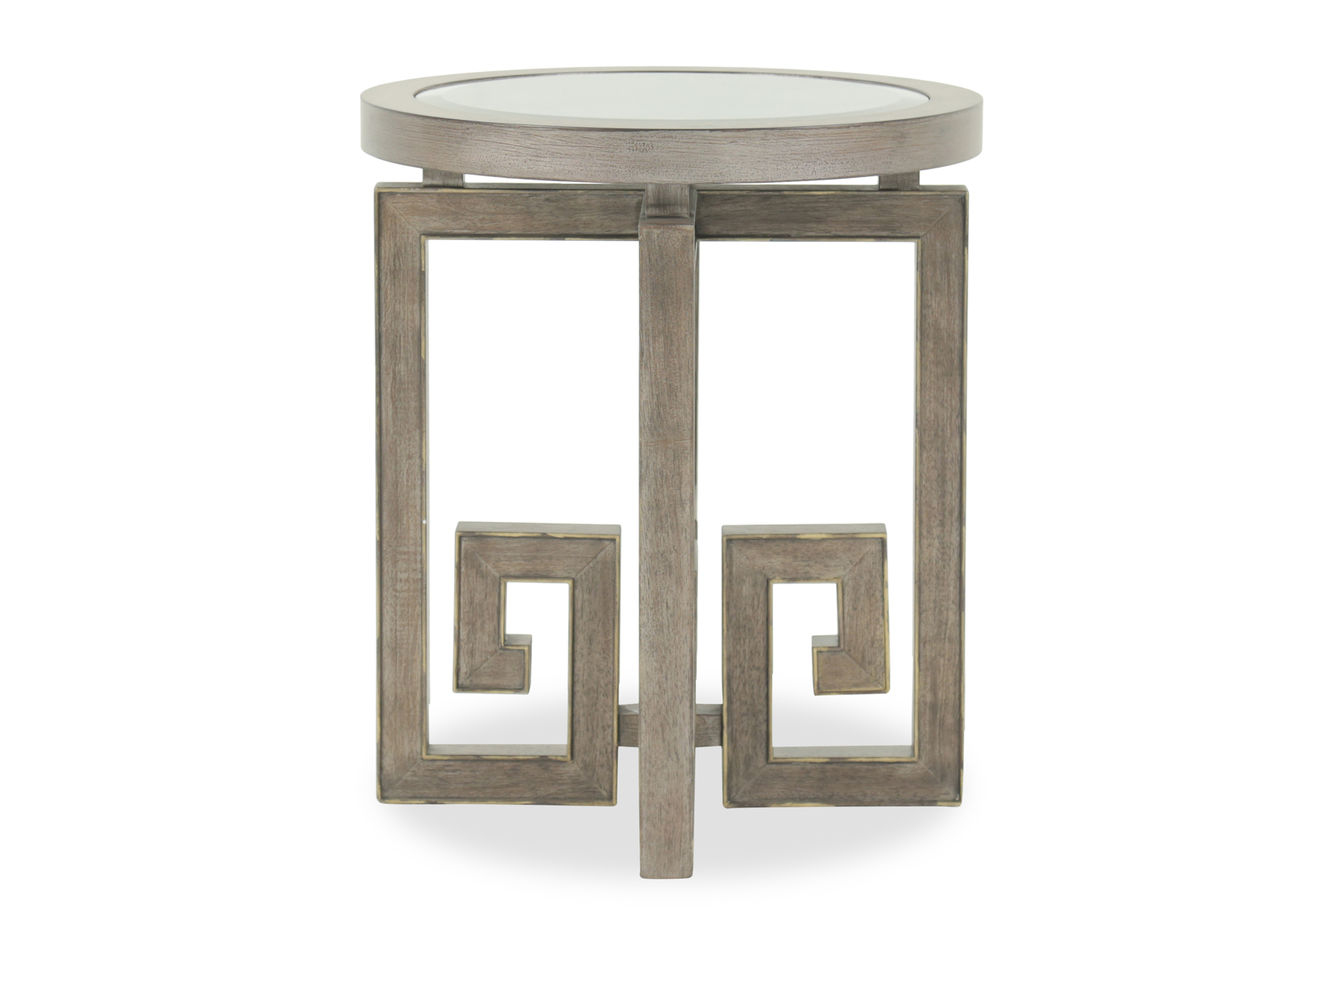 pulaski albyn brown round accent table mathis brothers furniture pul cupboards butler desk long decorative pearl drum throne with backrest cement outdoor dining marble occasional